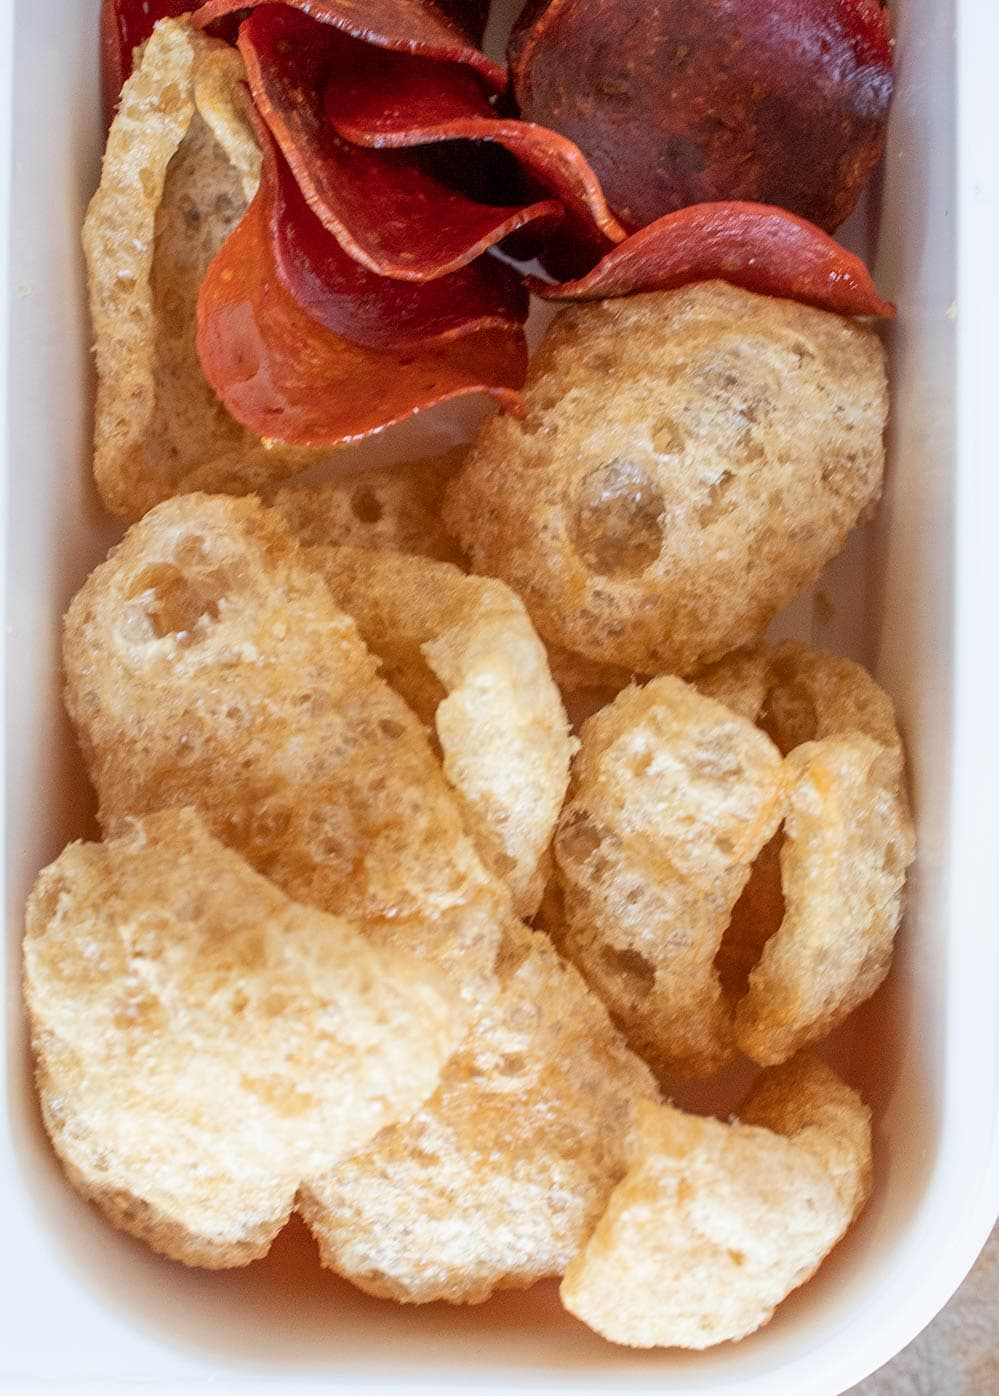 keto bistro box closeup containing pork rinds and pepperoni chips